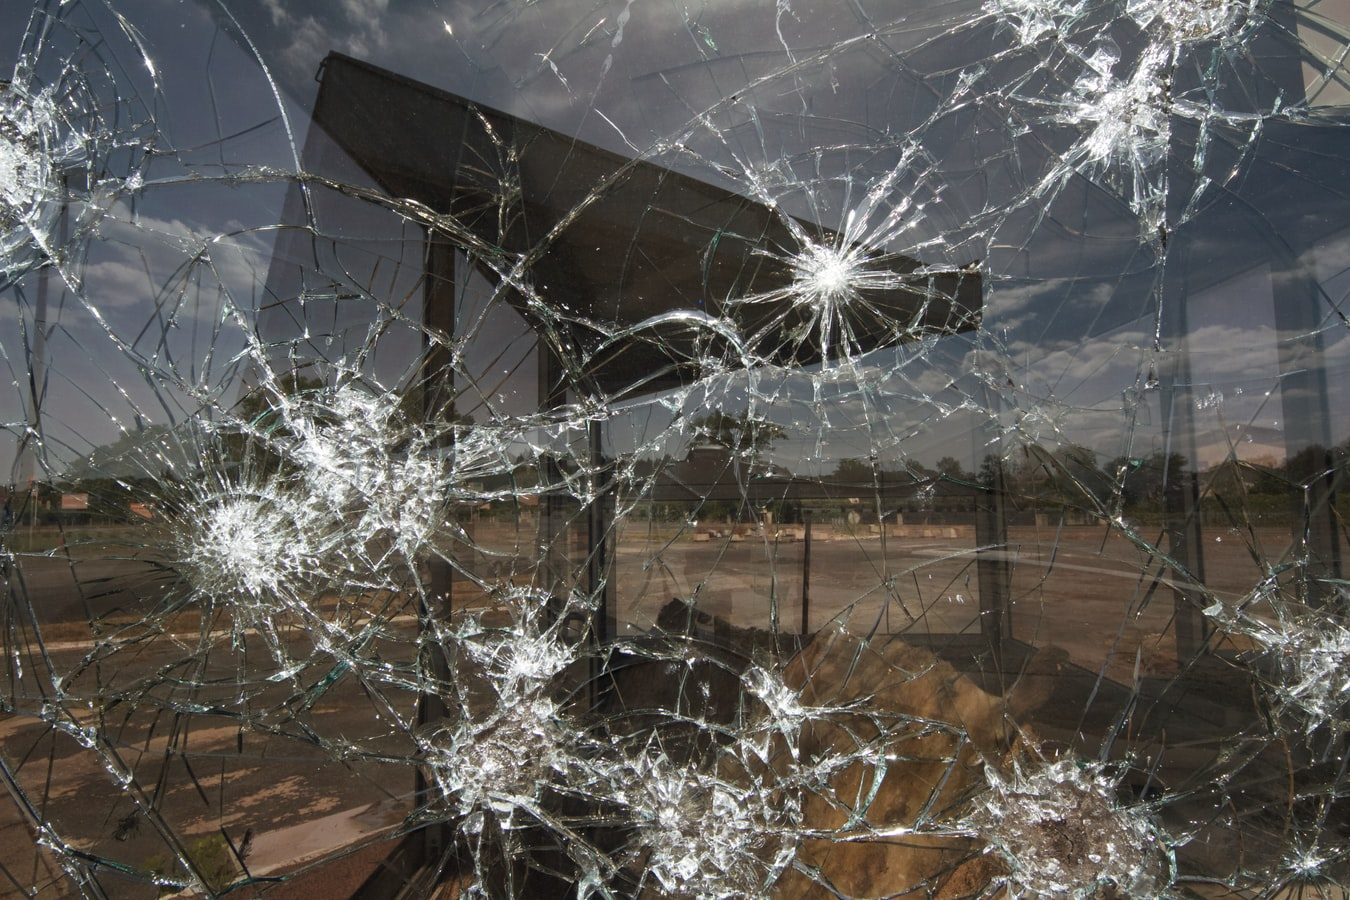 Collision Repair Shops, Roofing Companies Booked After Central Texas Hail Storm